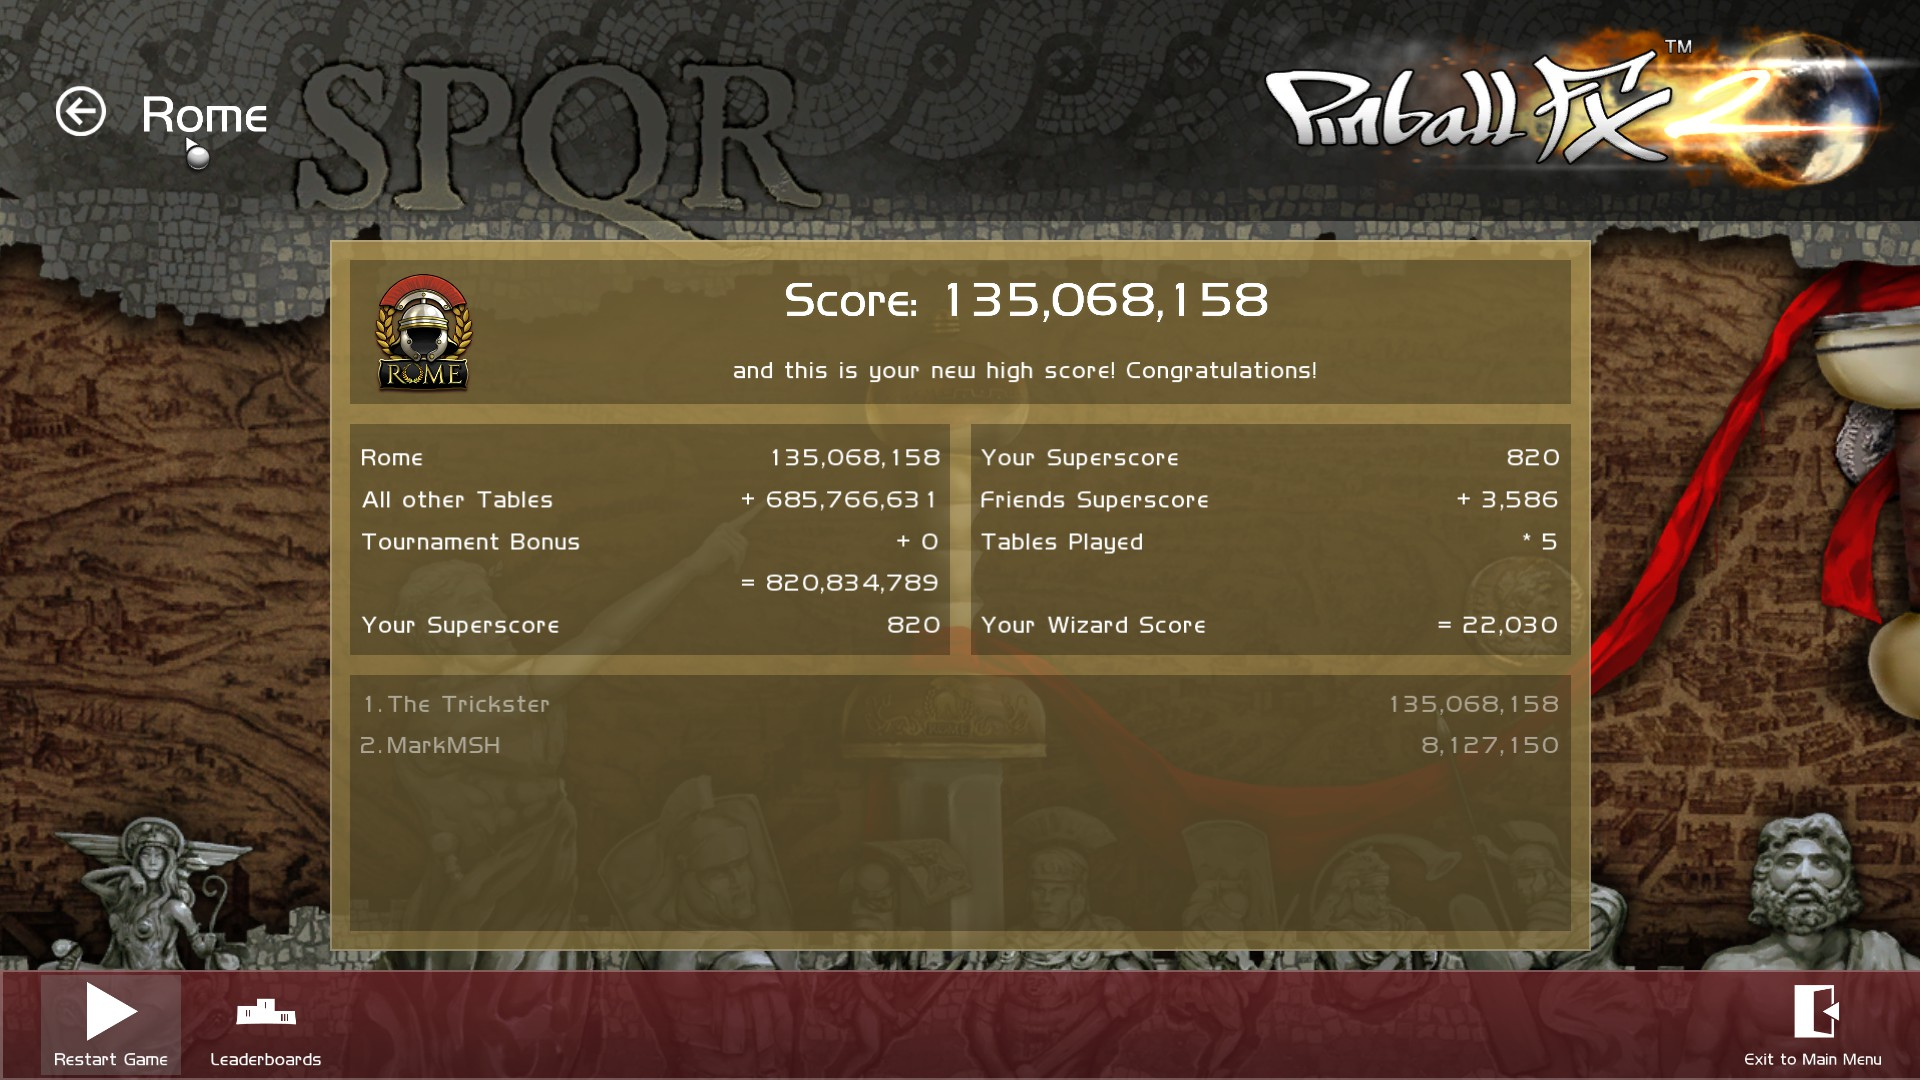 TheTrickster: Pinball FX 2: Rome (PC) 135,068,158 points on 2015-12-08 06:22:18